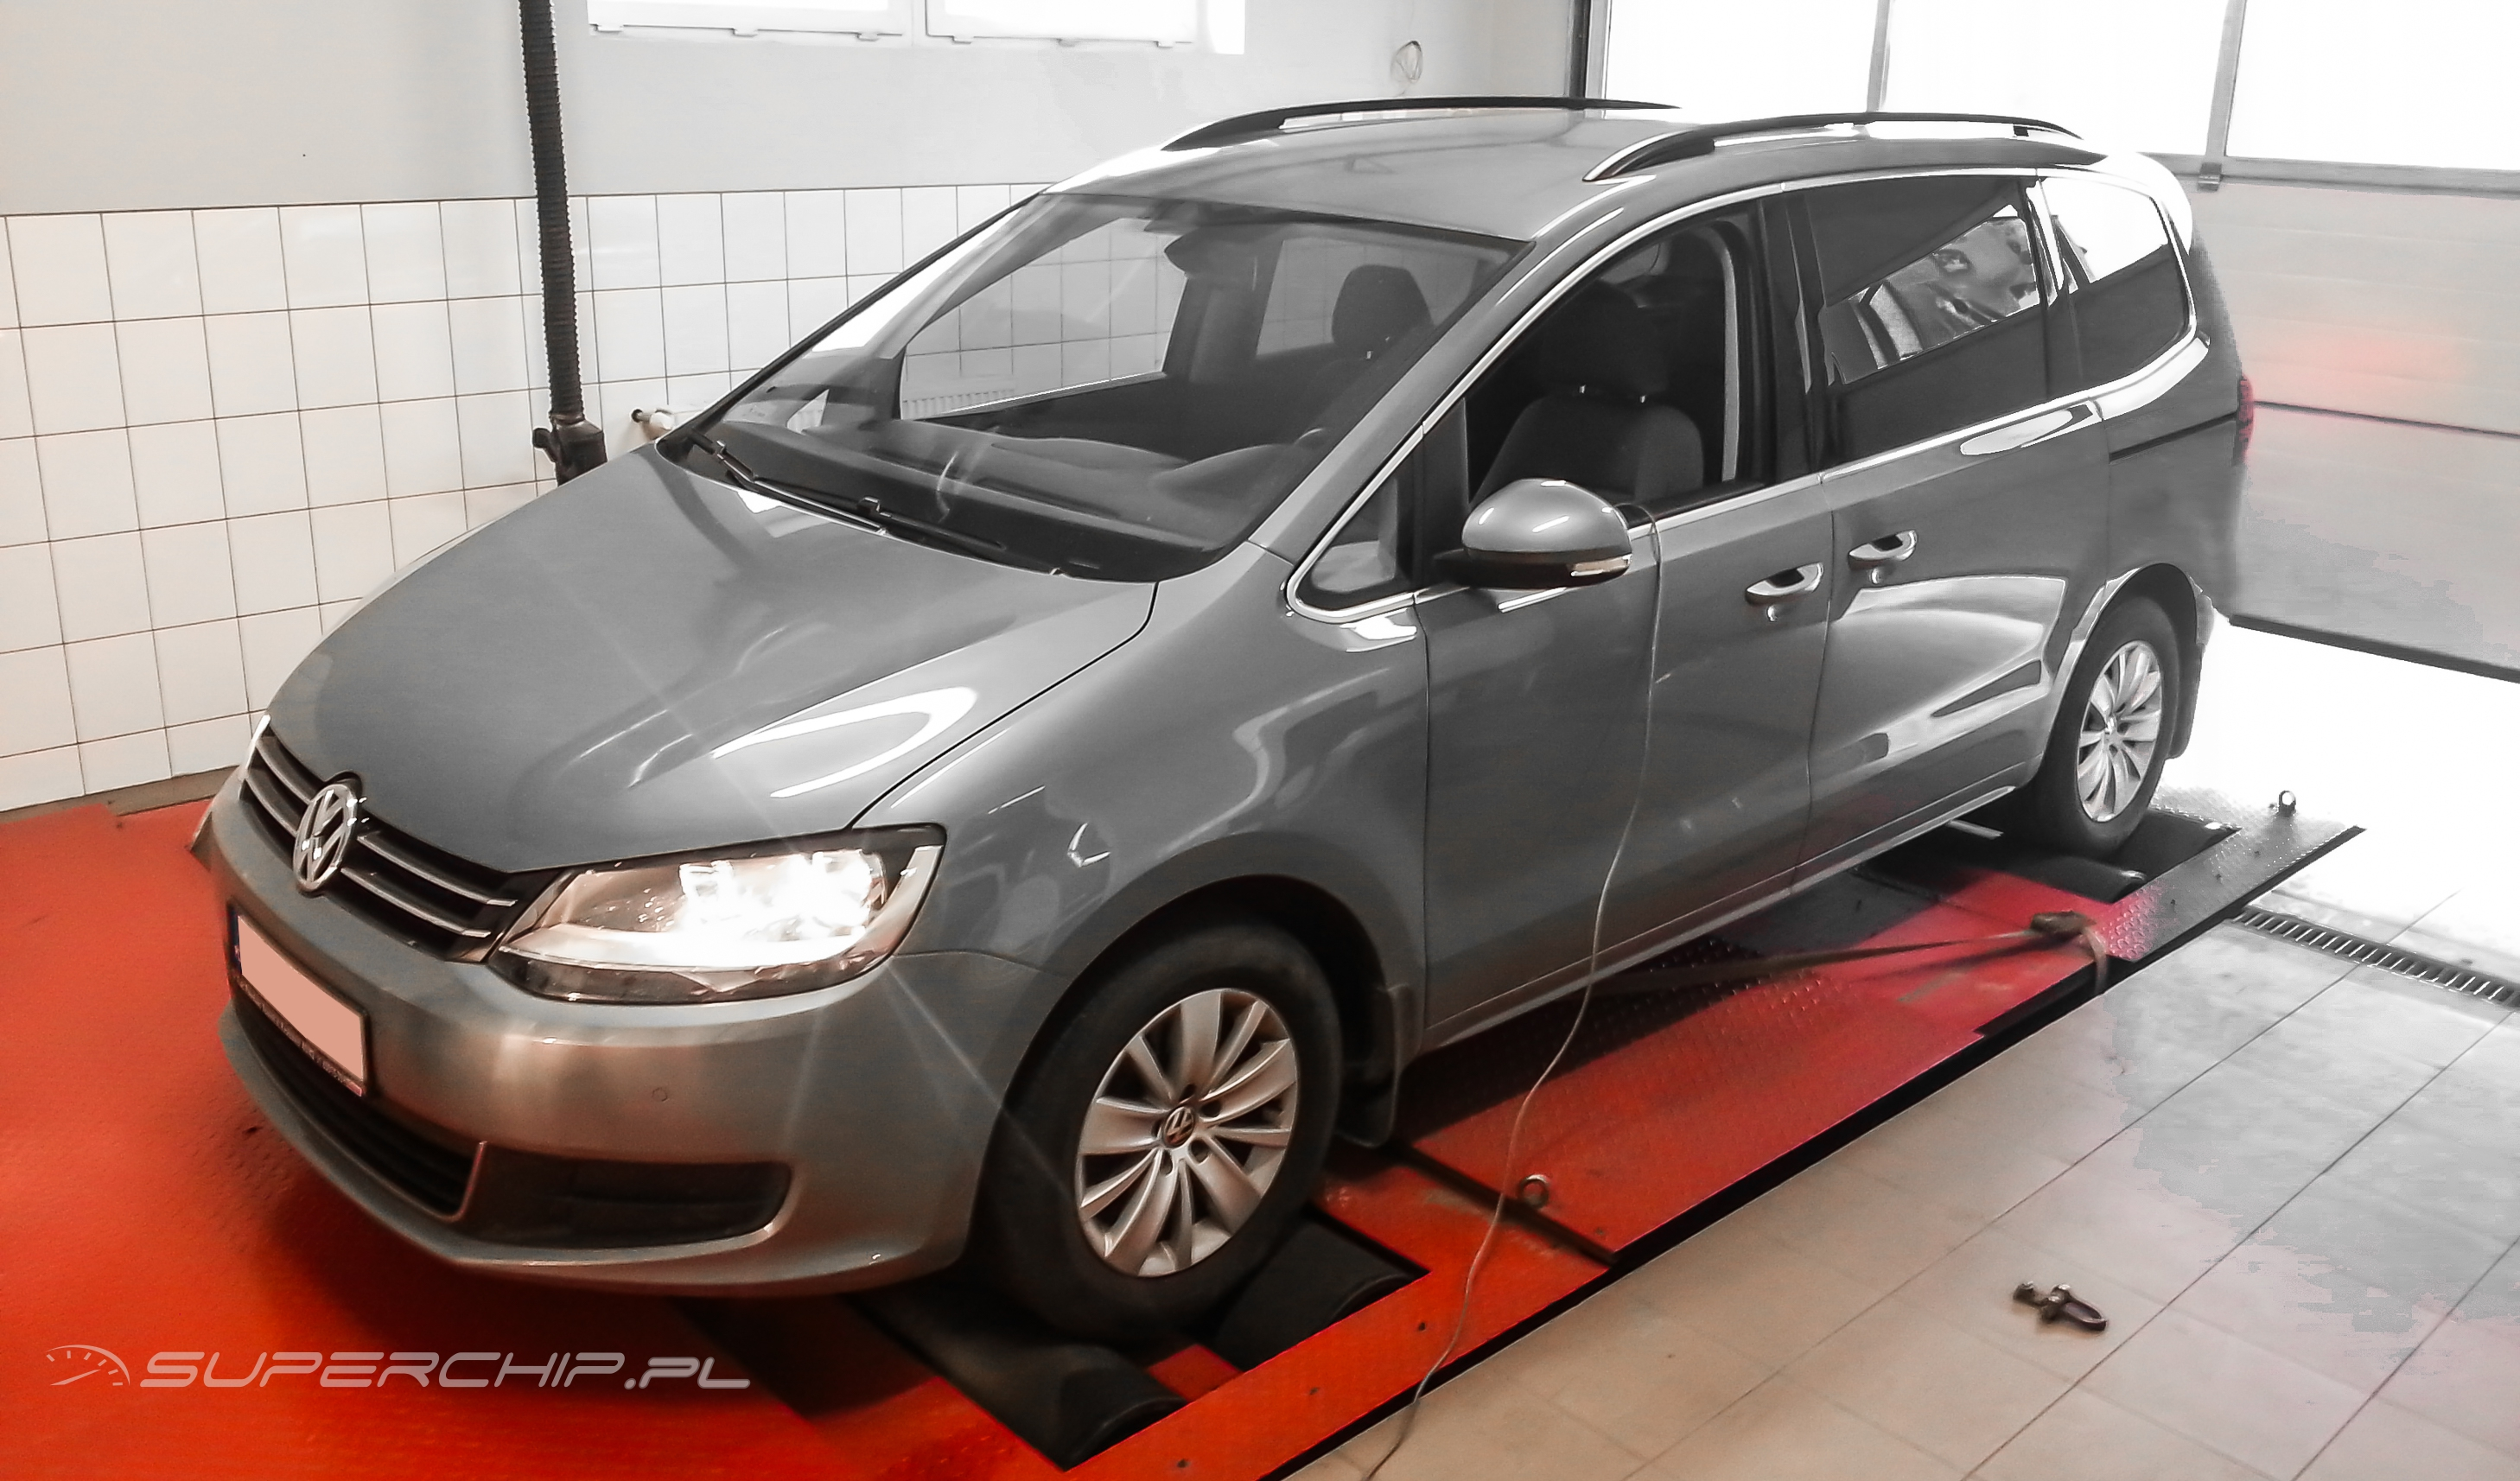 Vw Sharan 2.0 TDI CR 140 KM (+38) ChipTuning